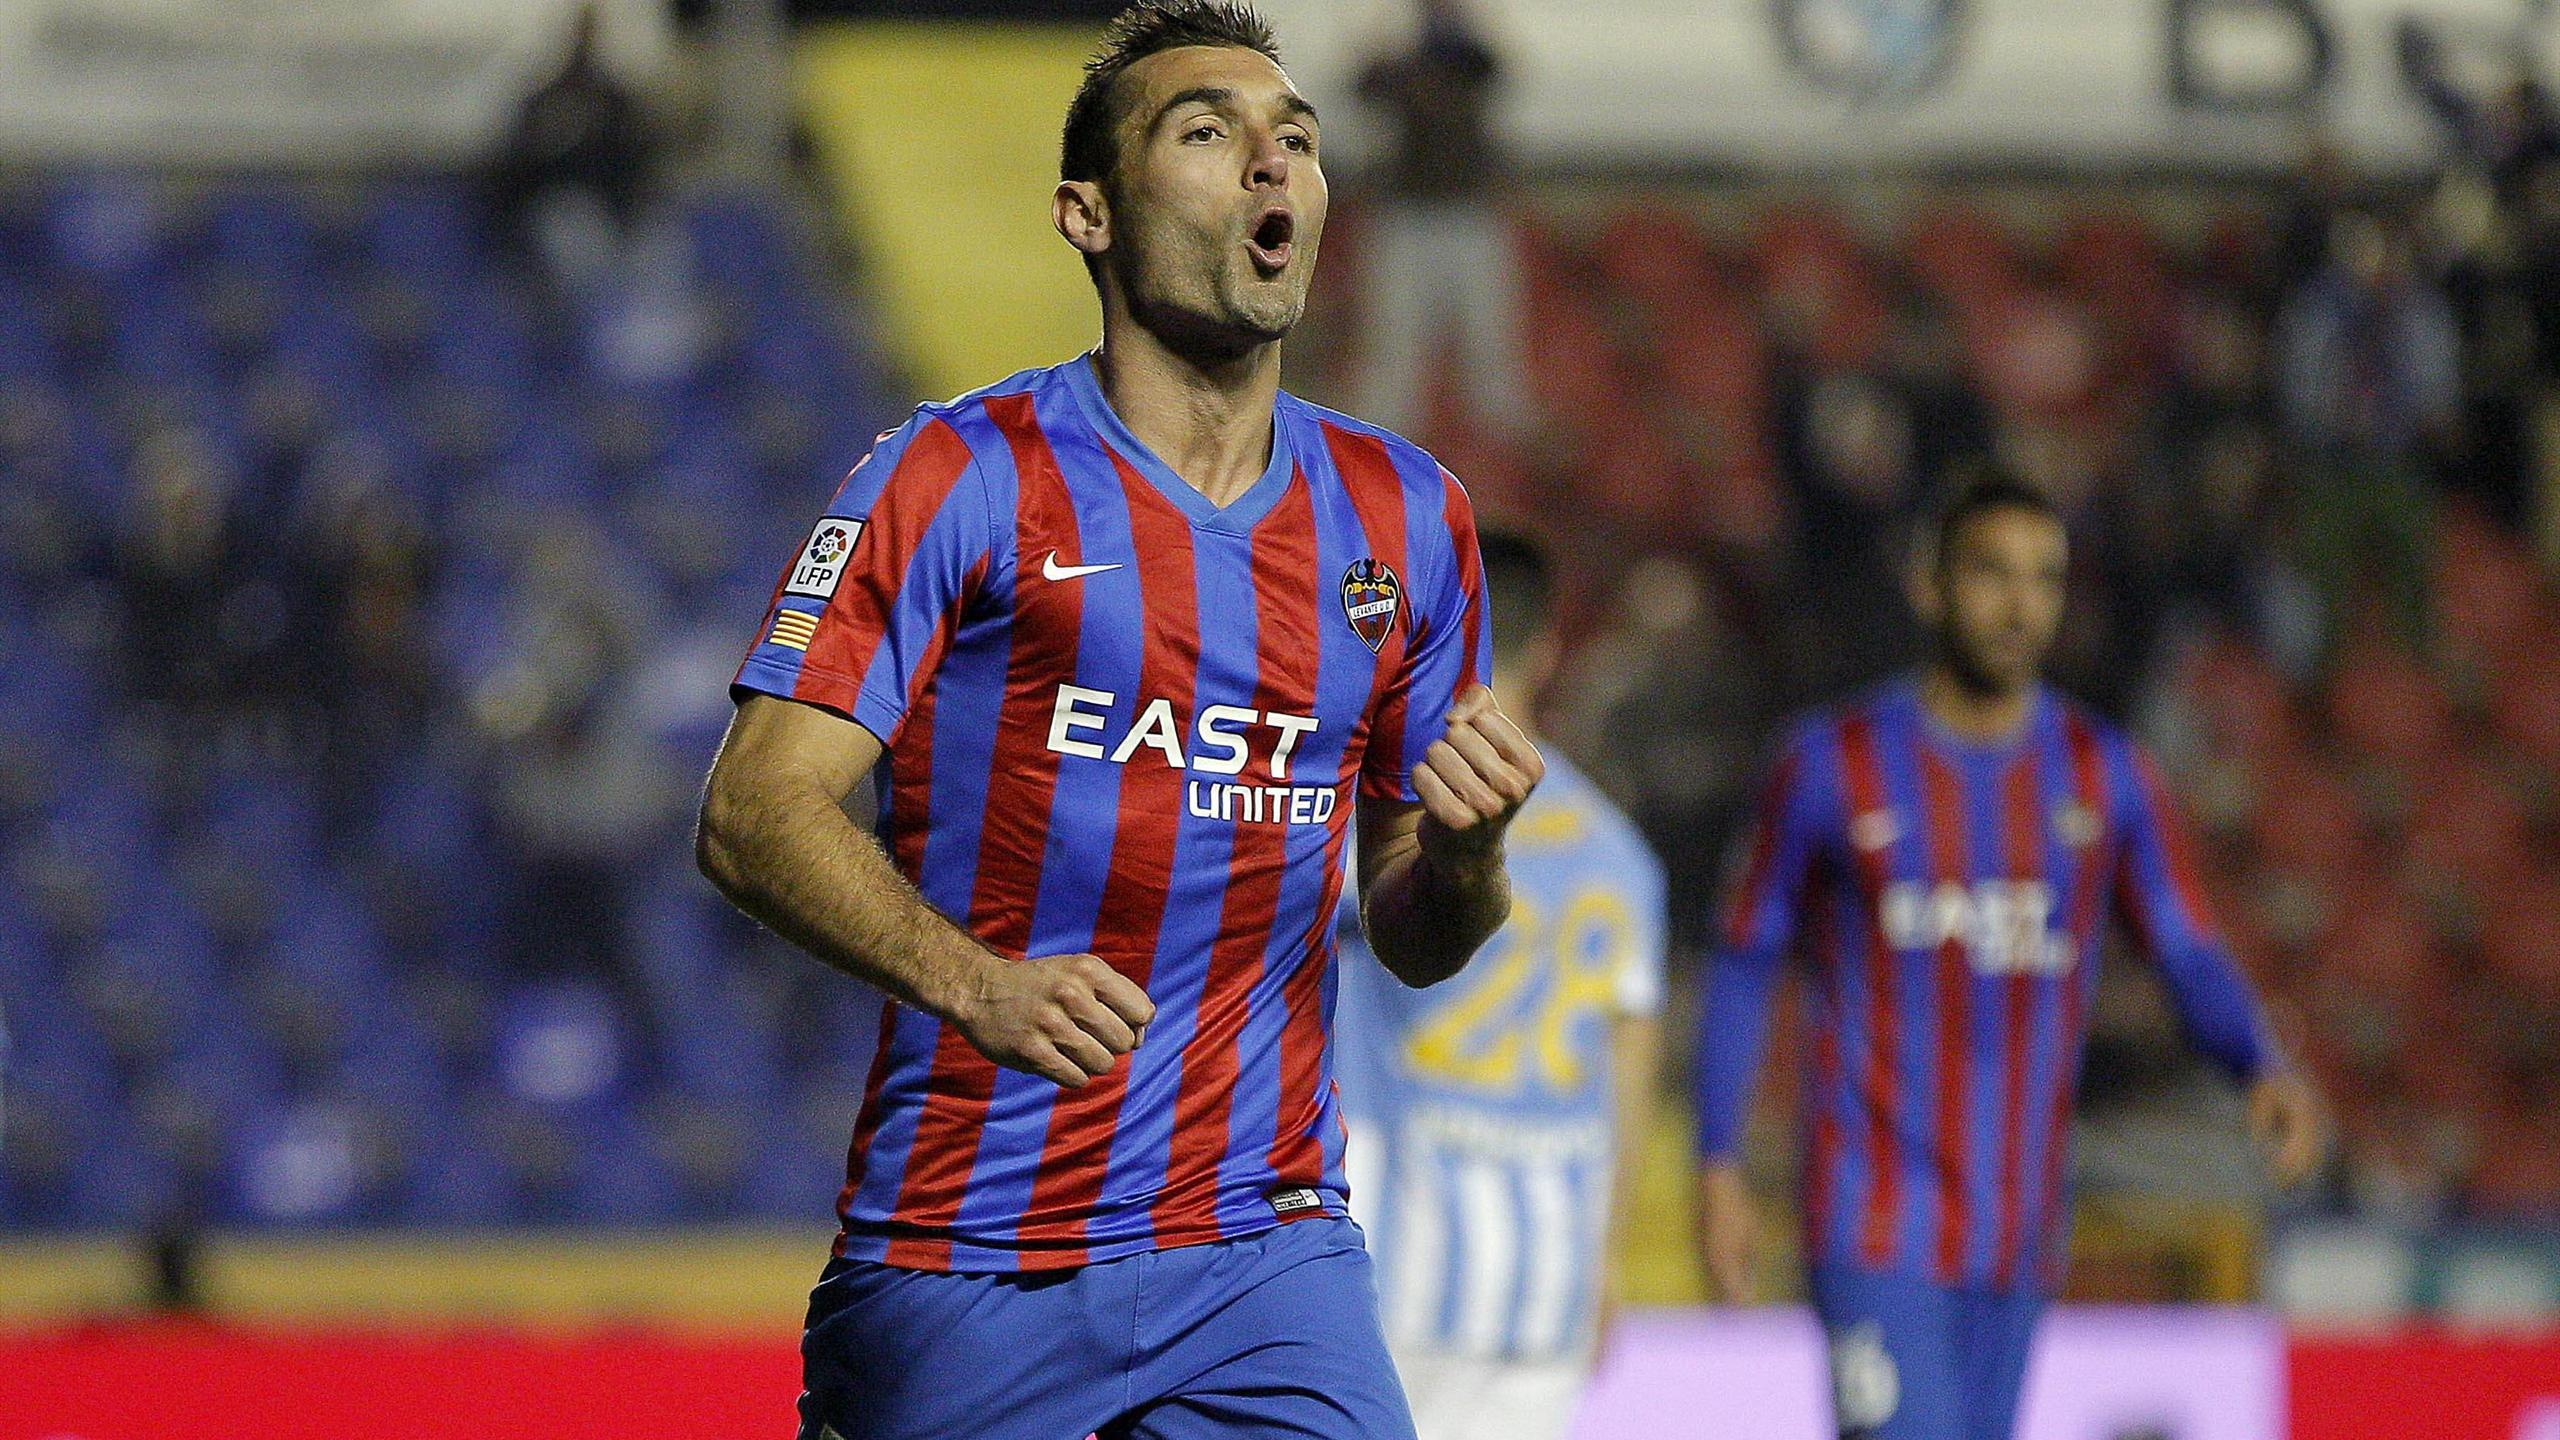 Video: Levante vs Malaga